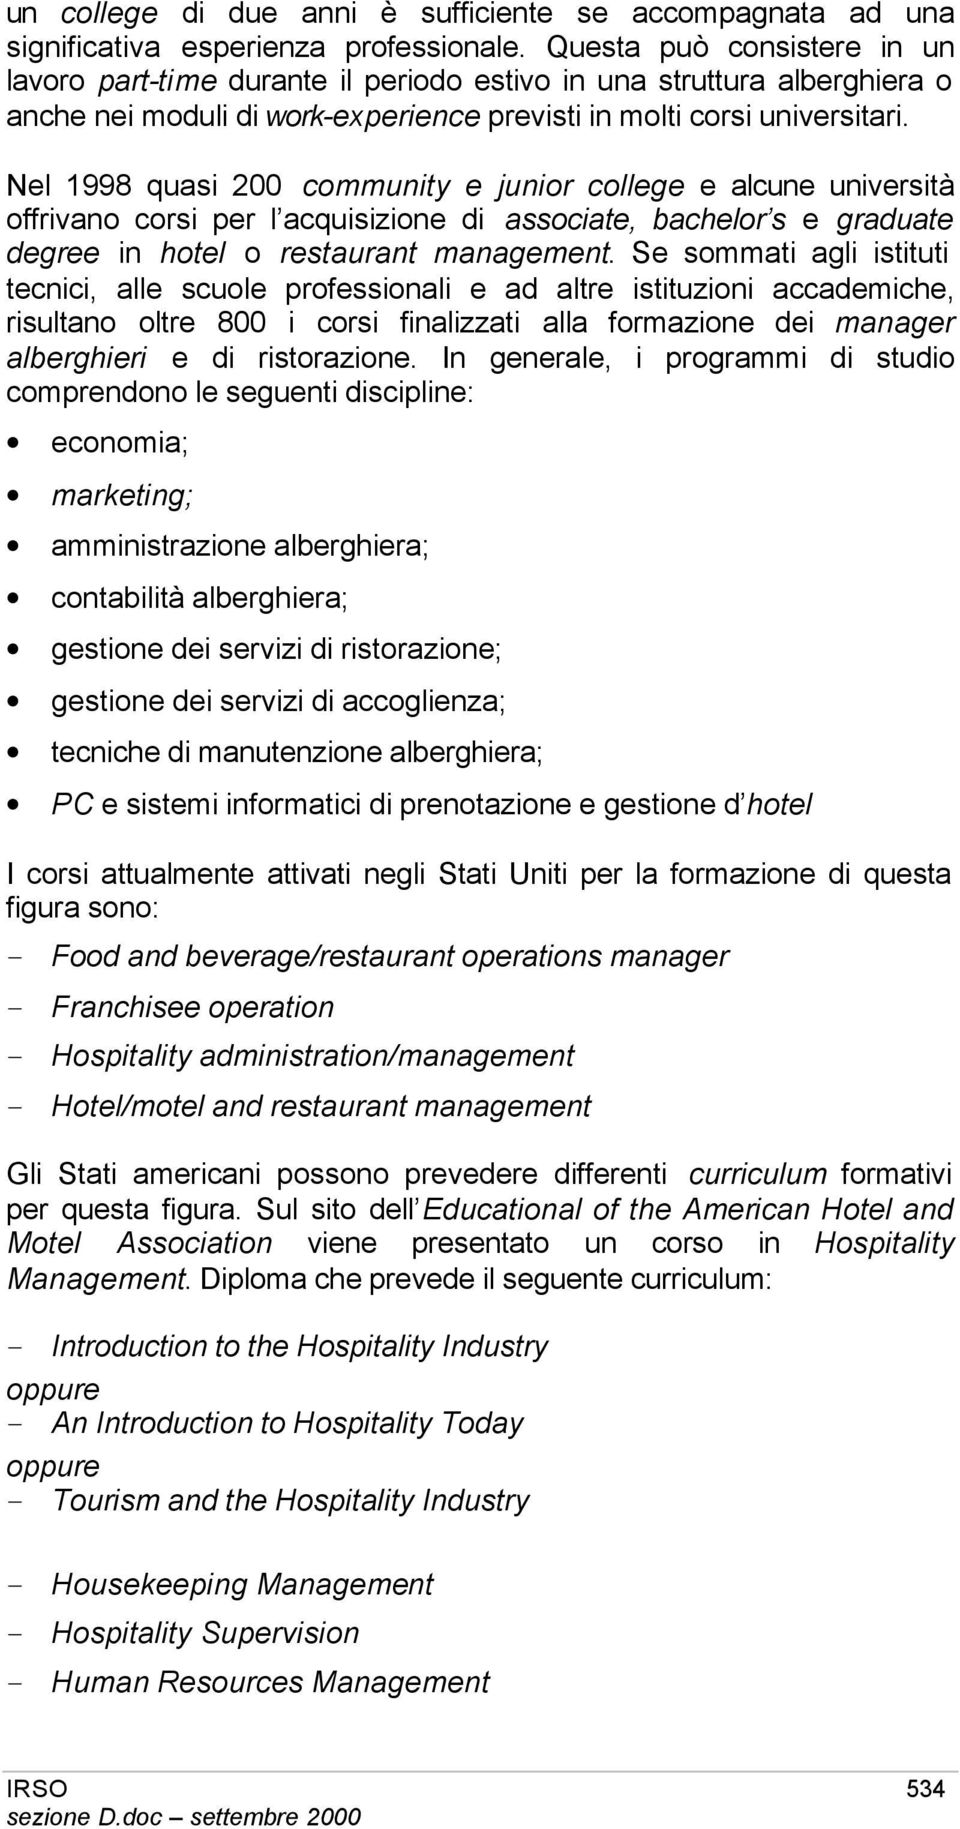 Nel 1998 quasi 200 community e junior college e alcune università offrivano corsi per l acquisizione di associate, bachelor s e graduate degree in hotel o restaurant management.